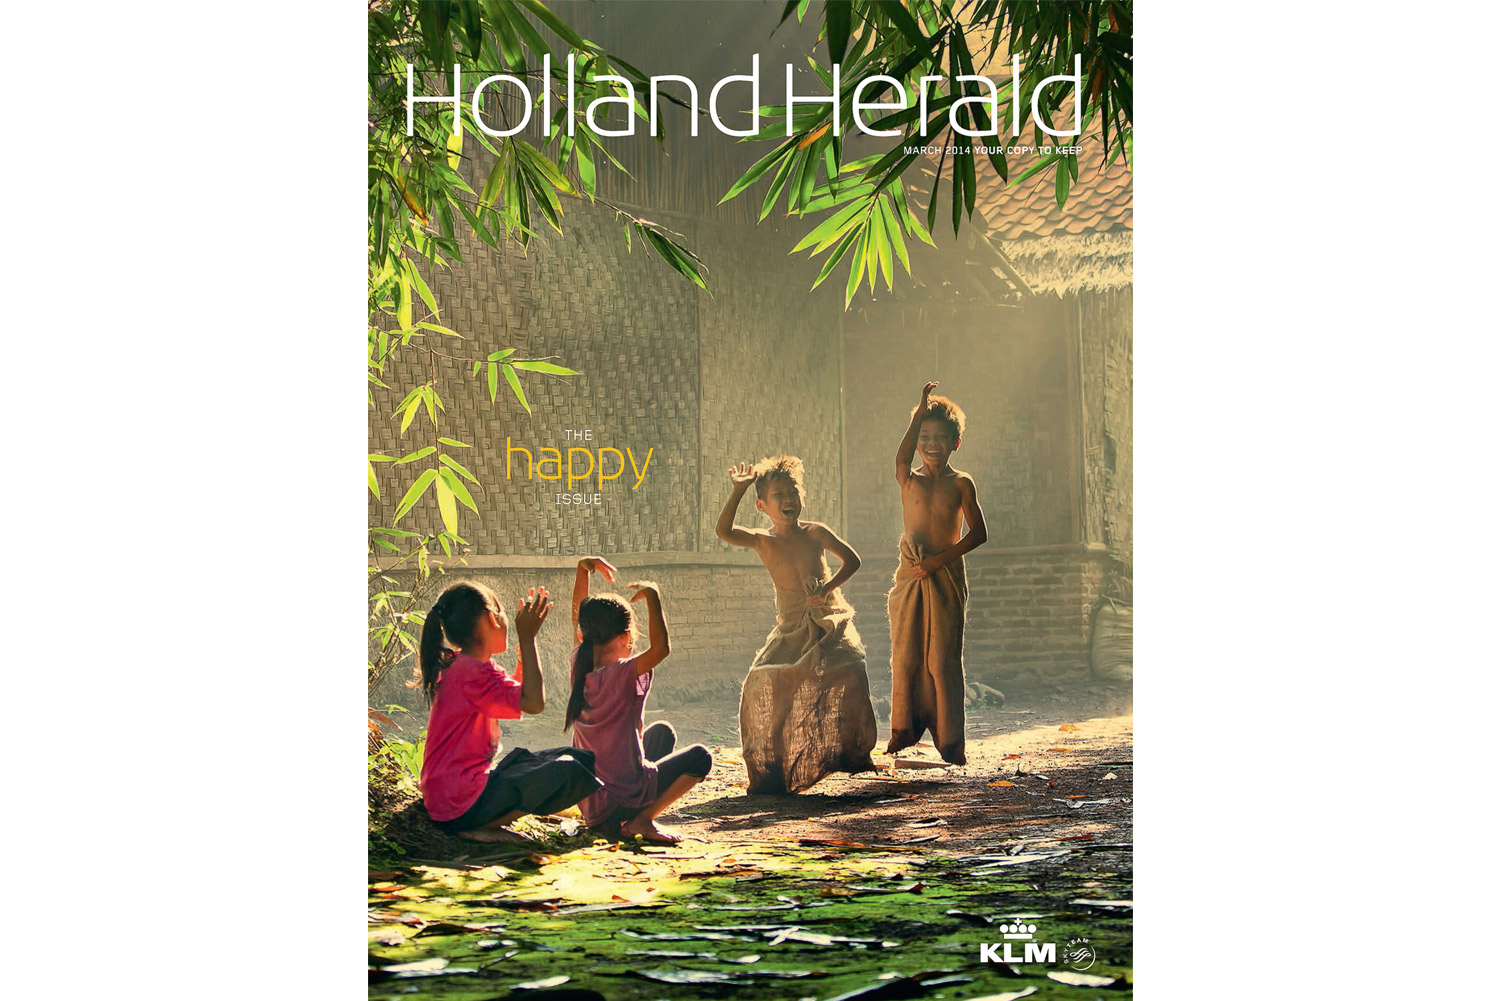 Holland Herald - KLM Airlines